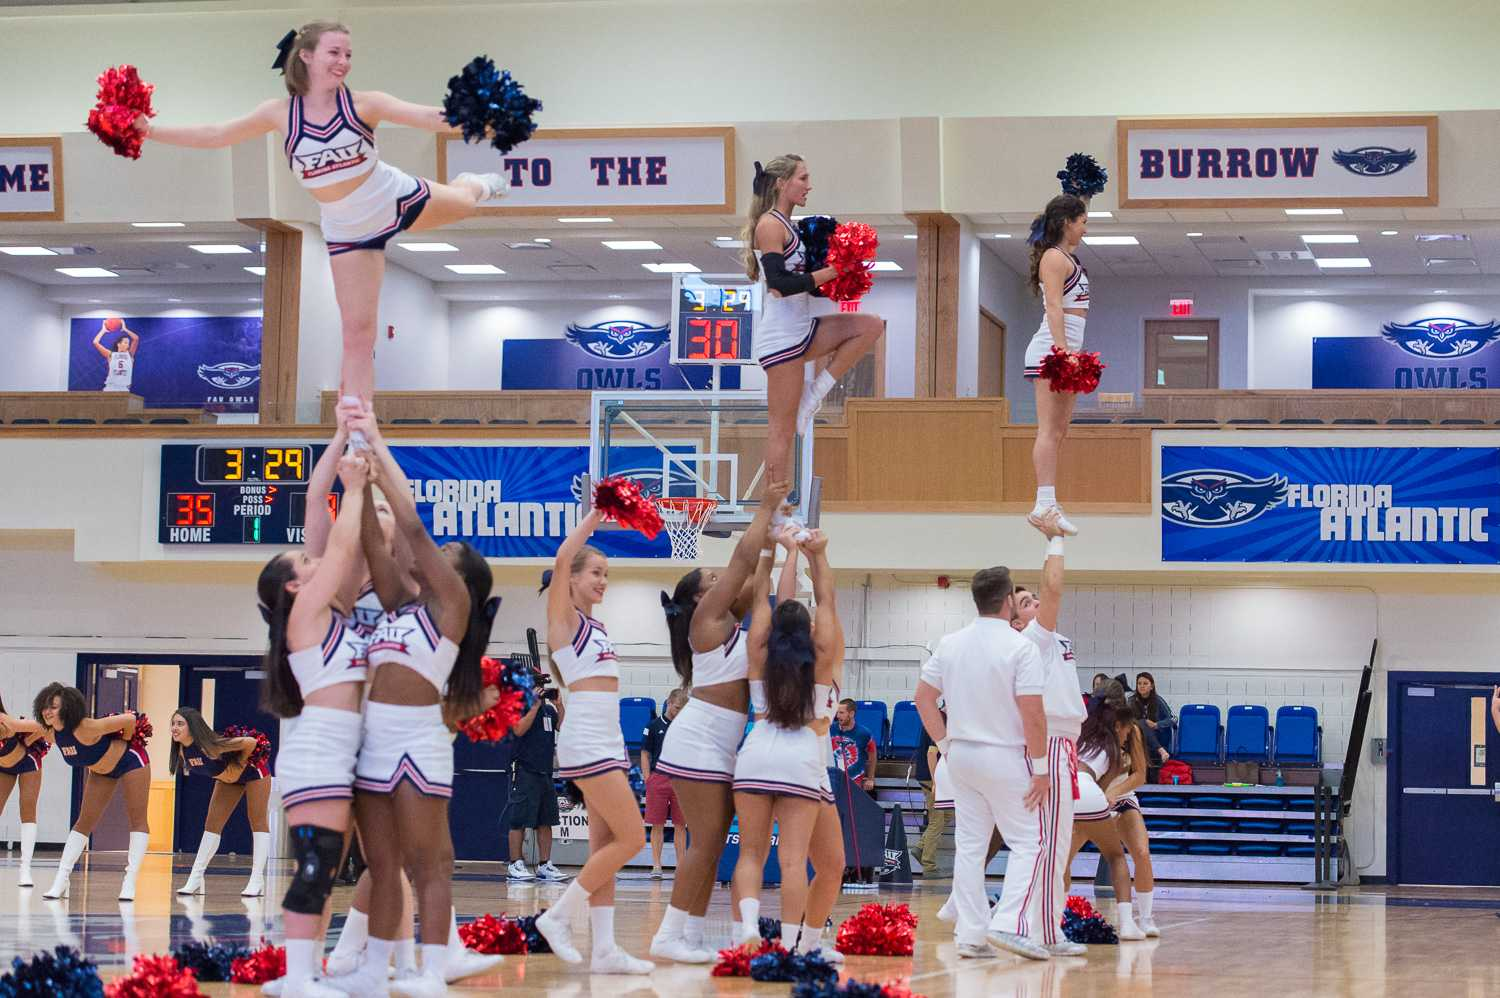 The FAU cheerleaders perform during a break in the first half.